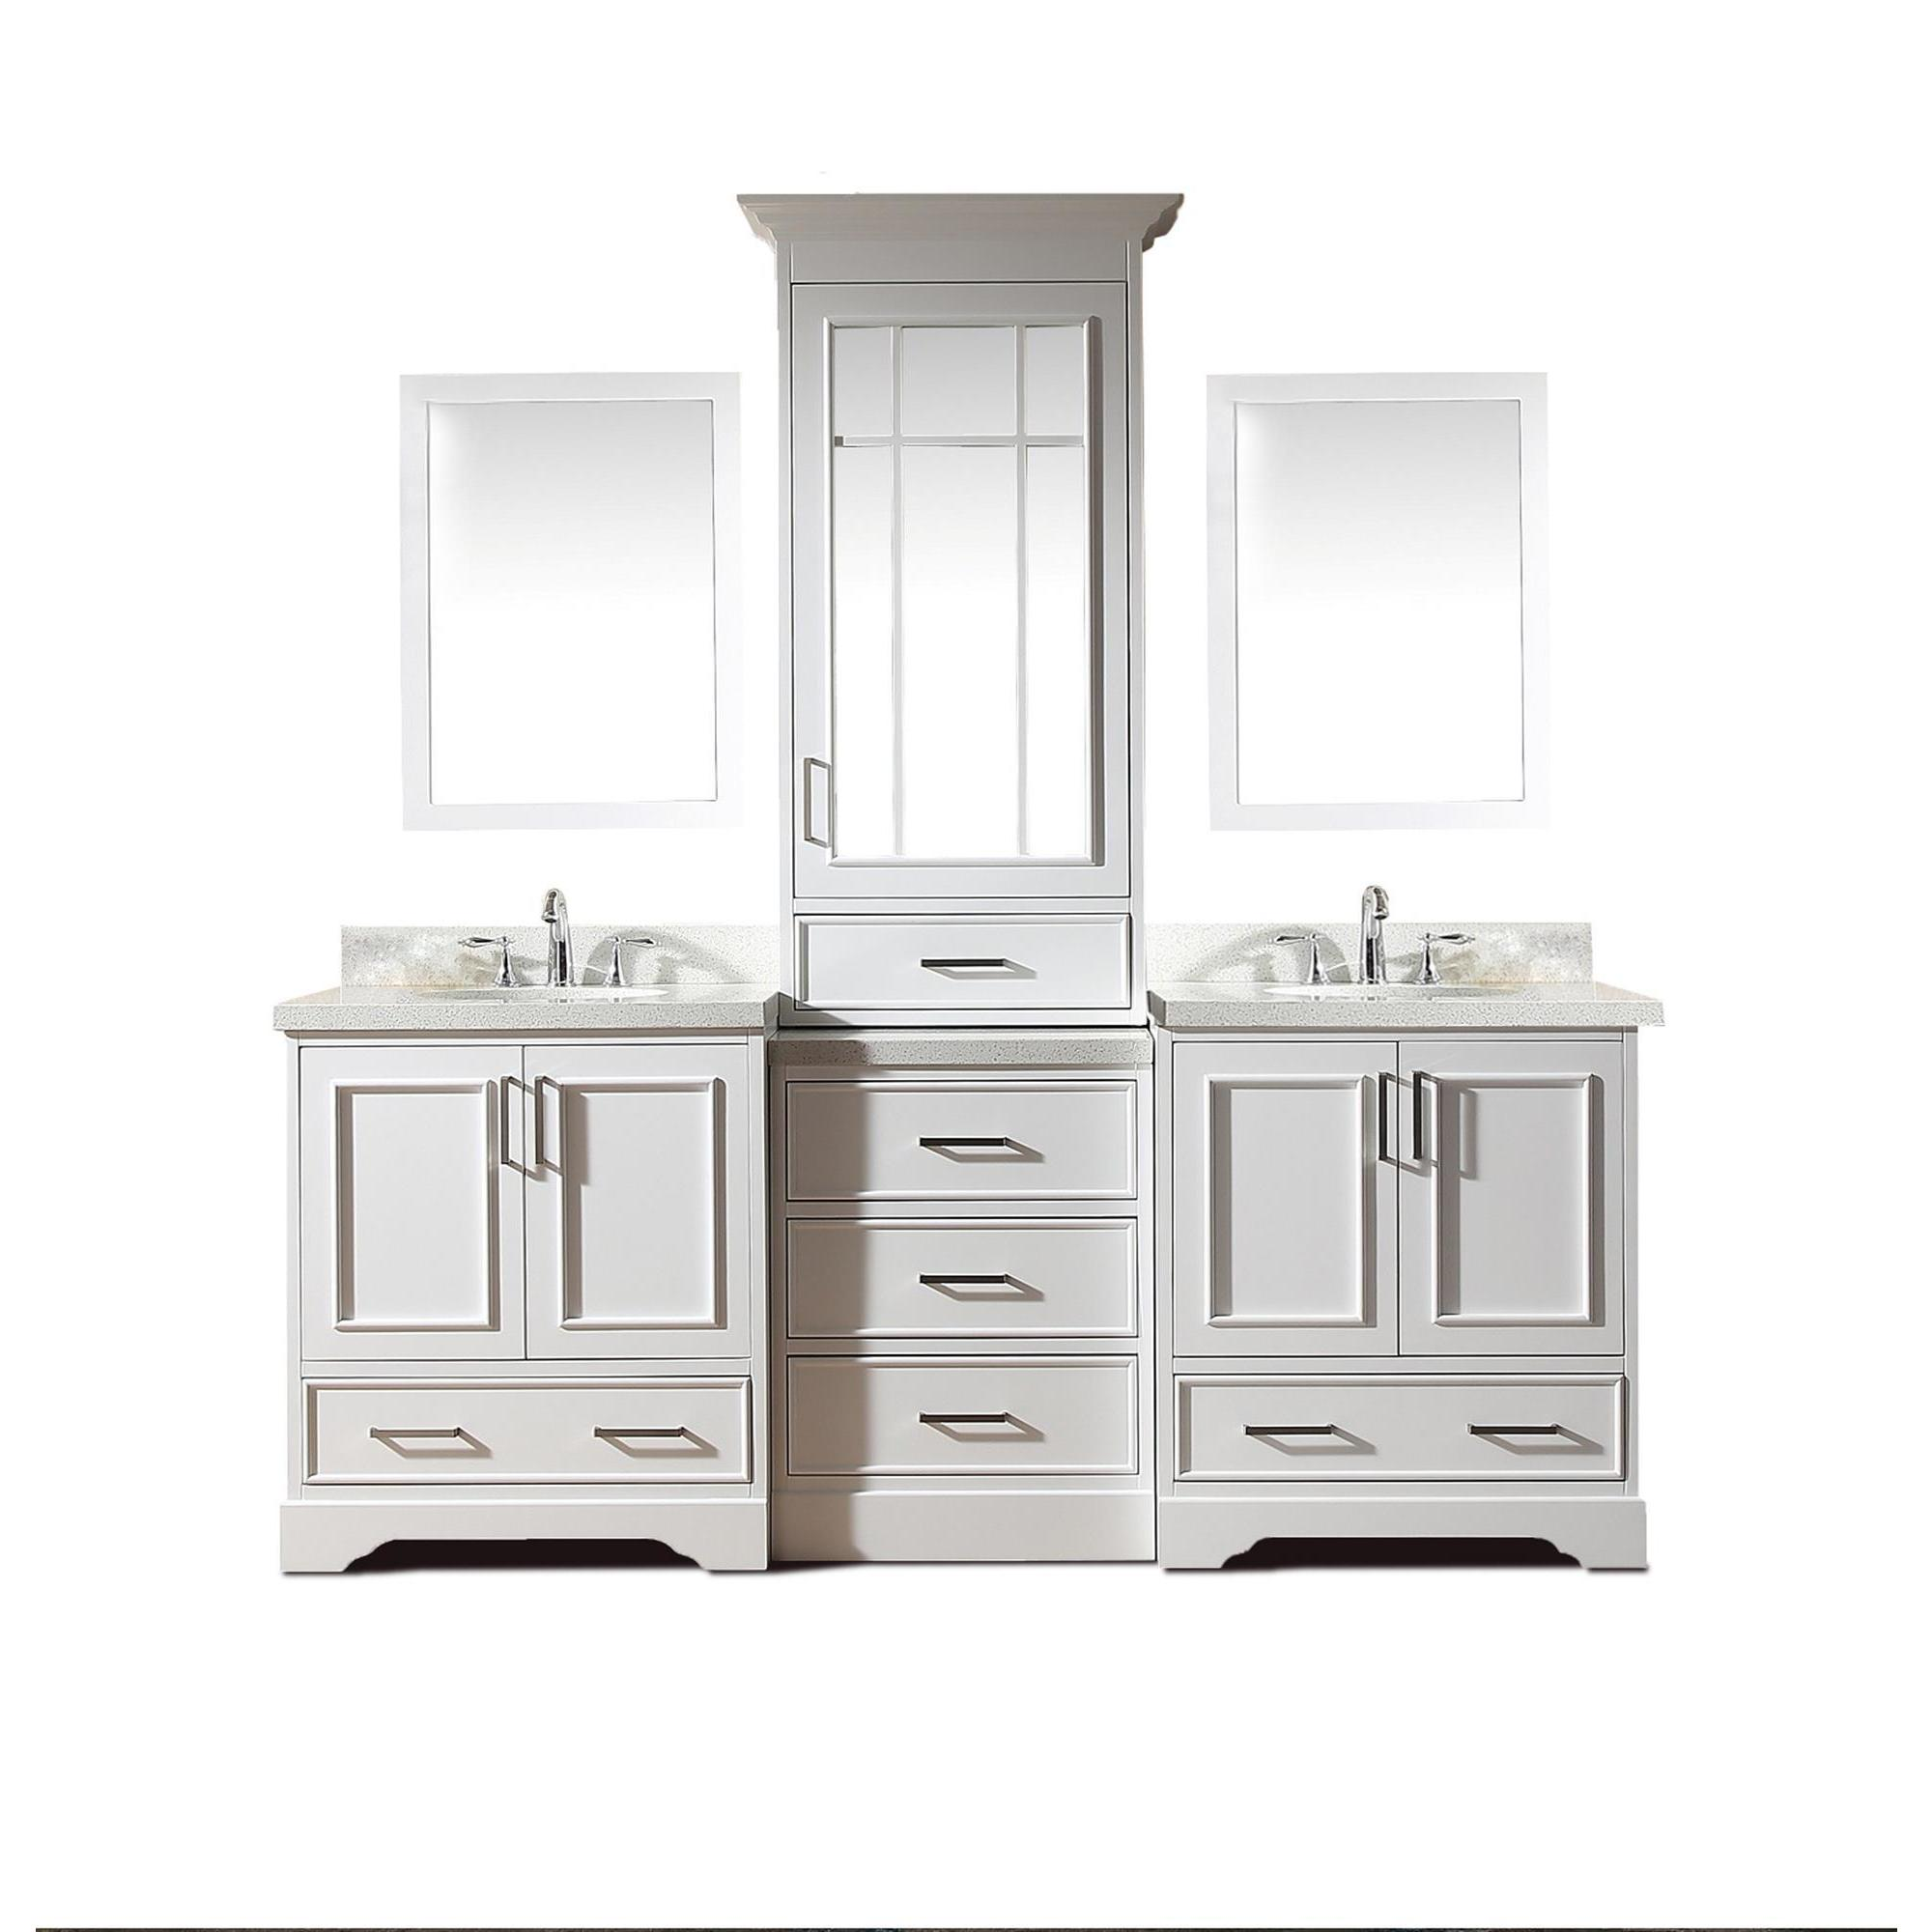 Stafford White Wood 85 Inch Double Sink Vanity Set With Center Medicine Cabinet Overstock 16413312